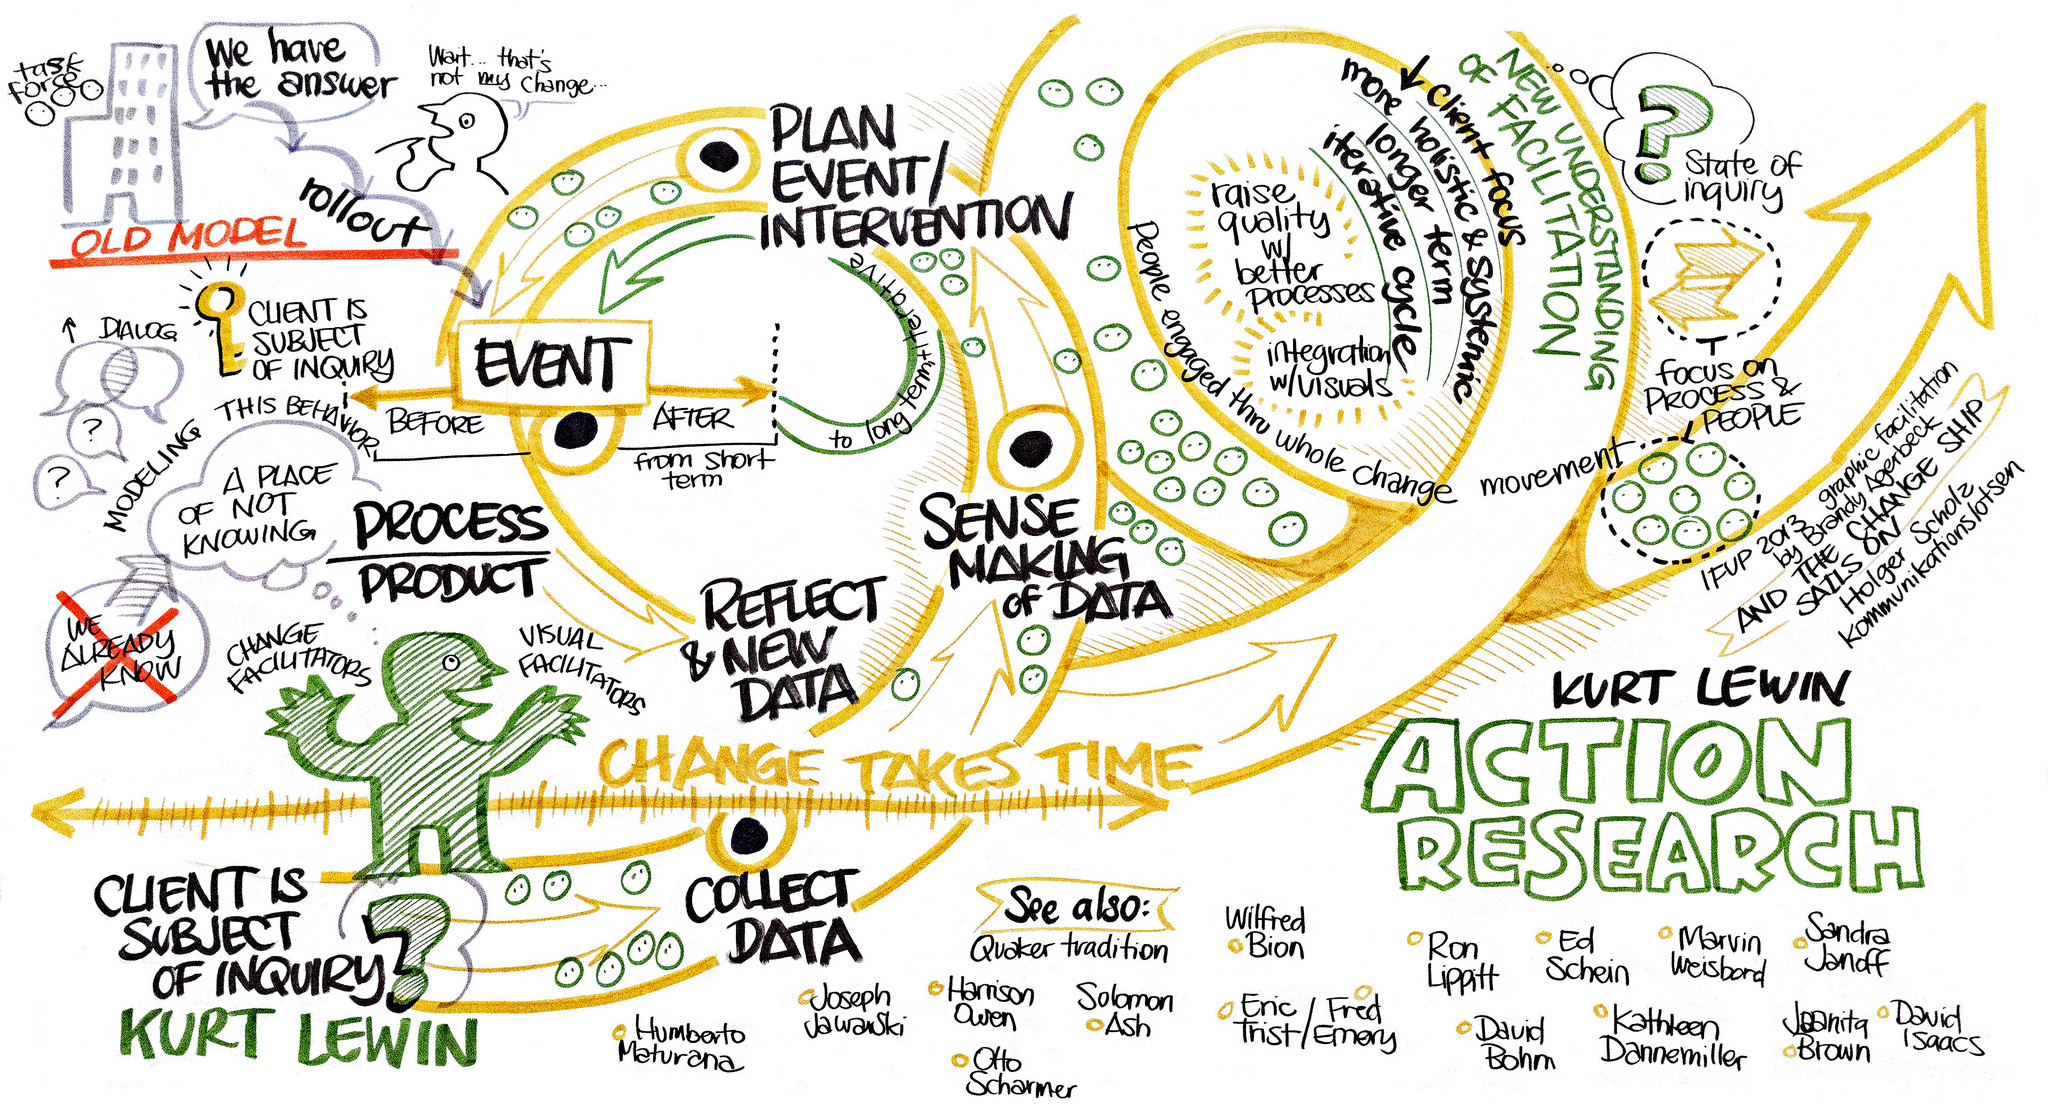 Final image from Holger Scholz's plenary session, IFVP NYC 2013